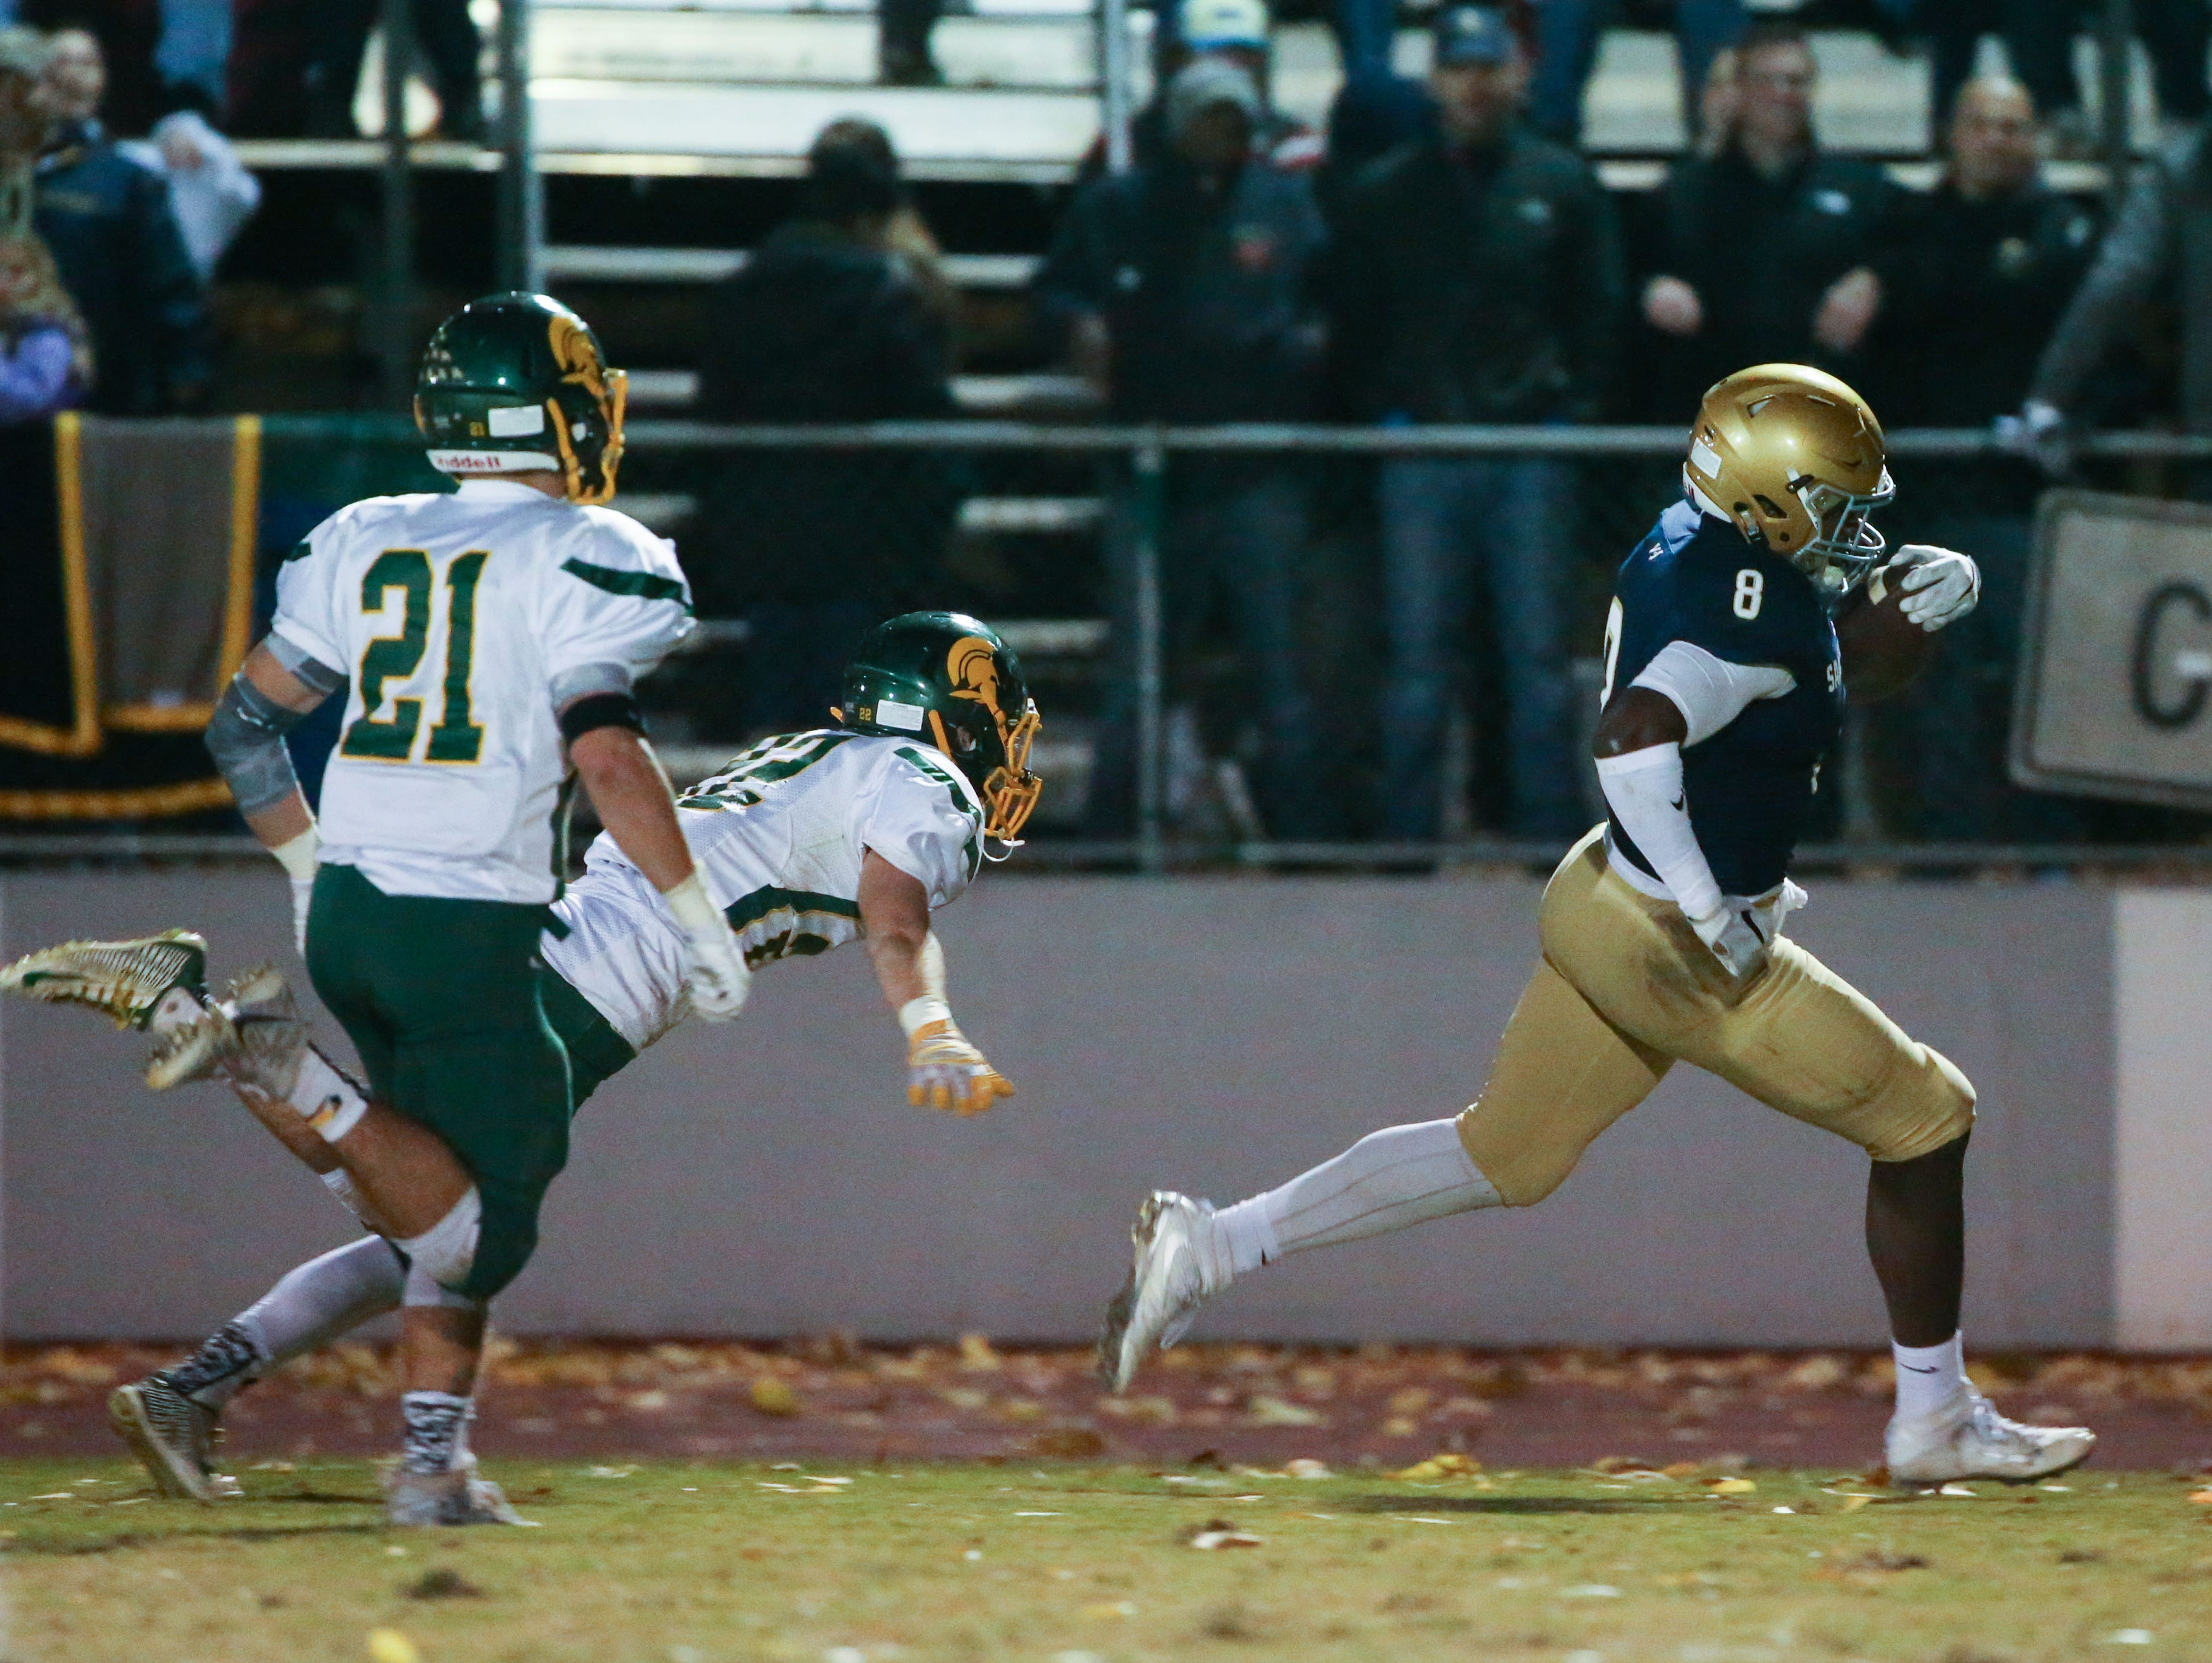 Salesianum running back Joshua Patrick scores in the second quarter to give Salesianum a 20-0 lead against St. Mark's at Baynard Stadium Friday.